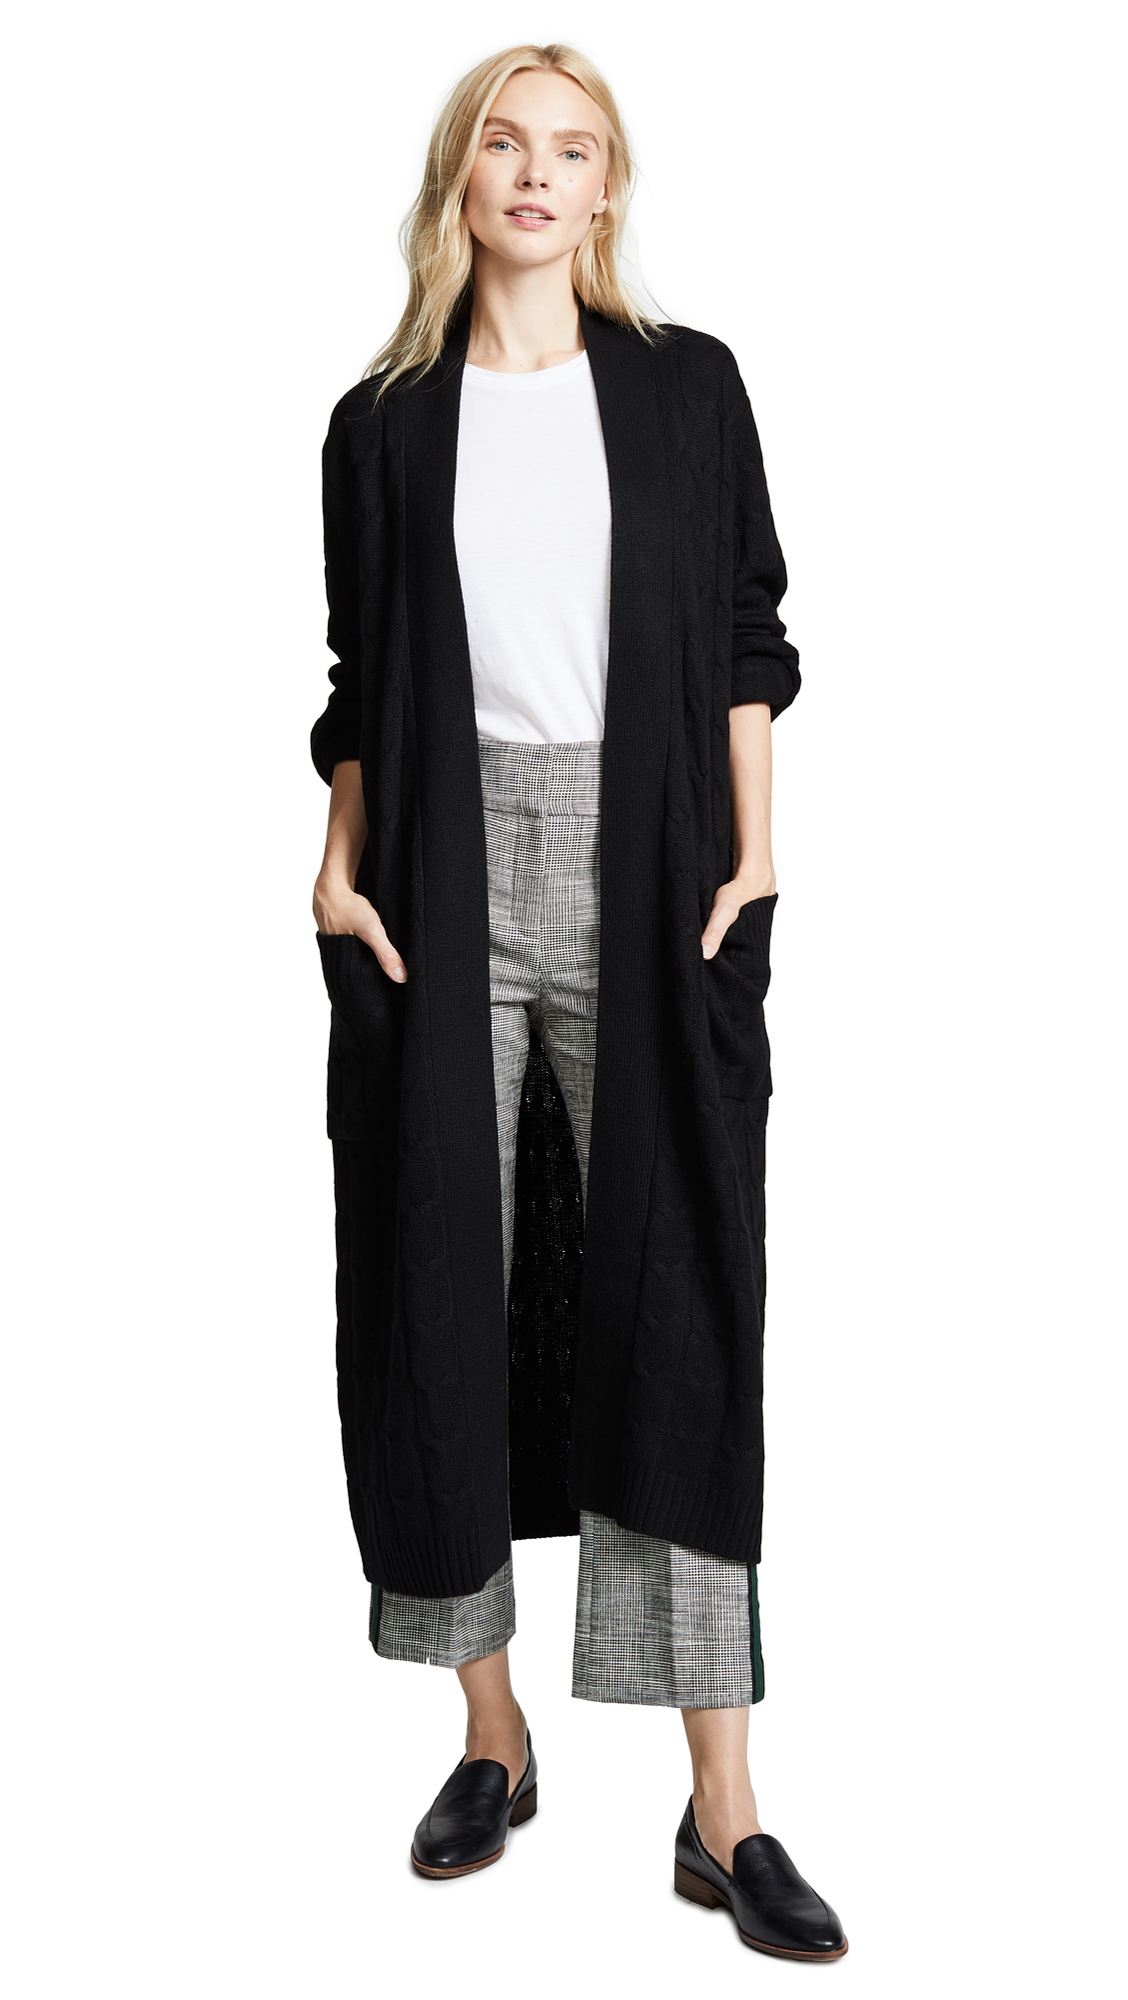 SABLYN VANESSA LONG CASHMERE CABLE COAT